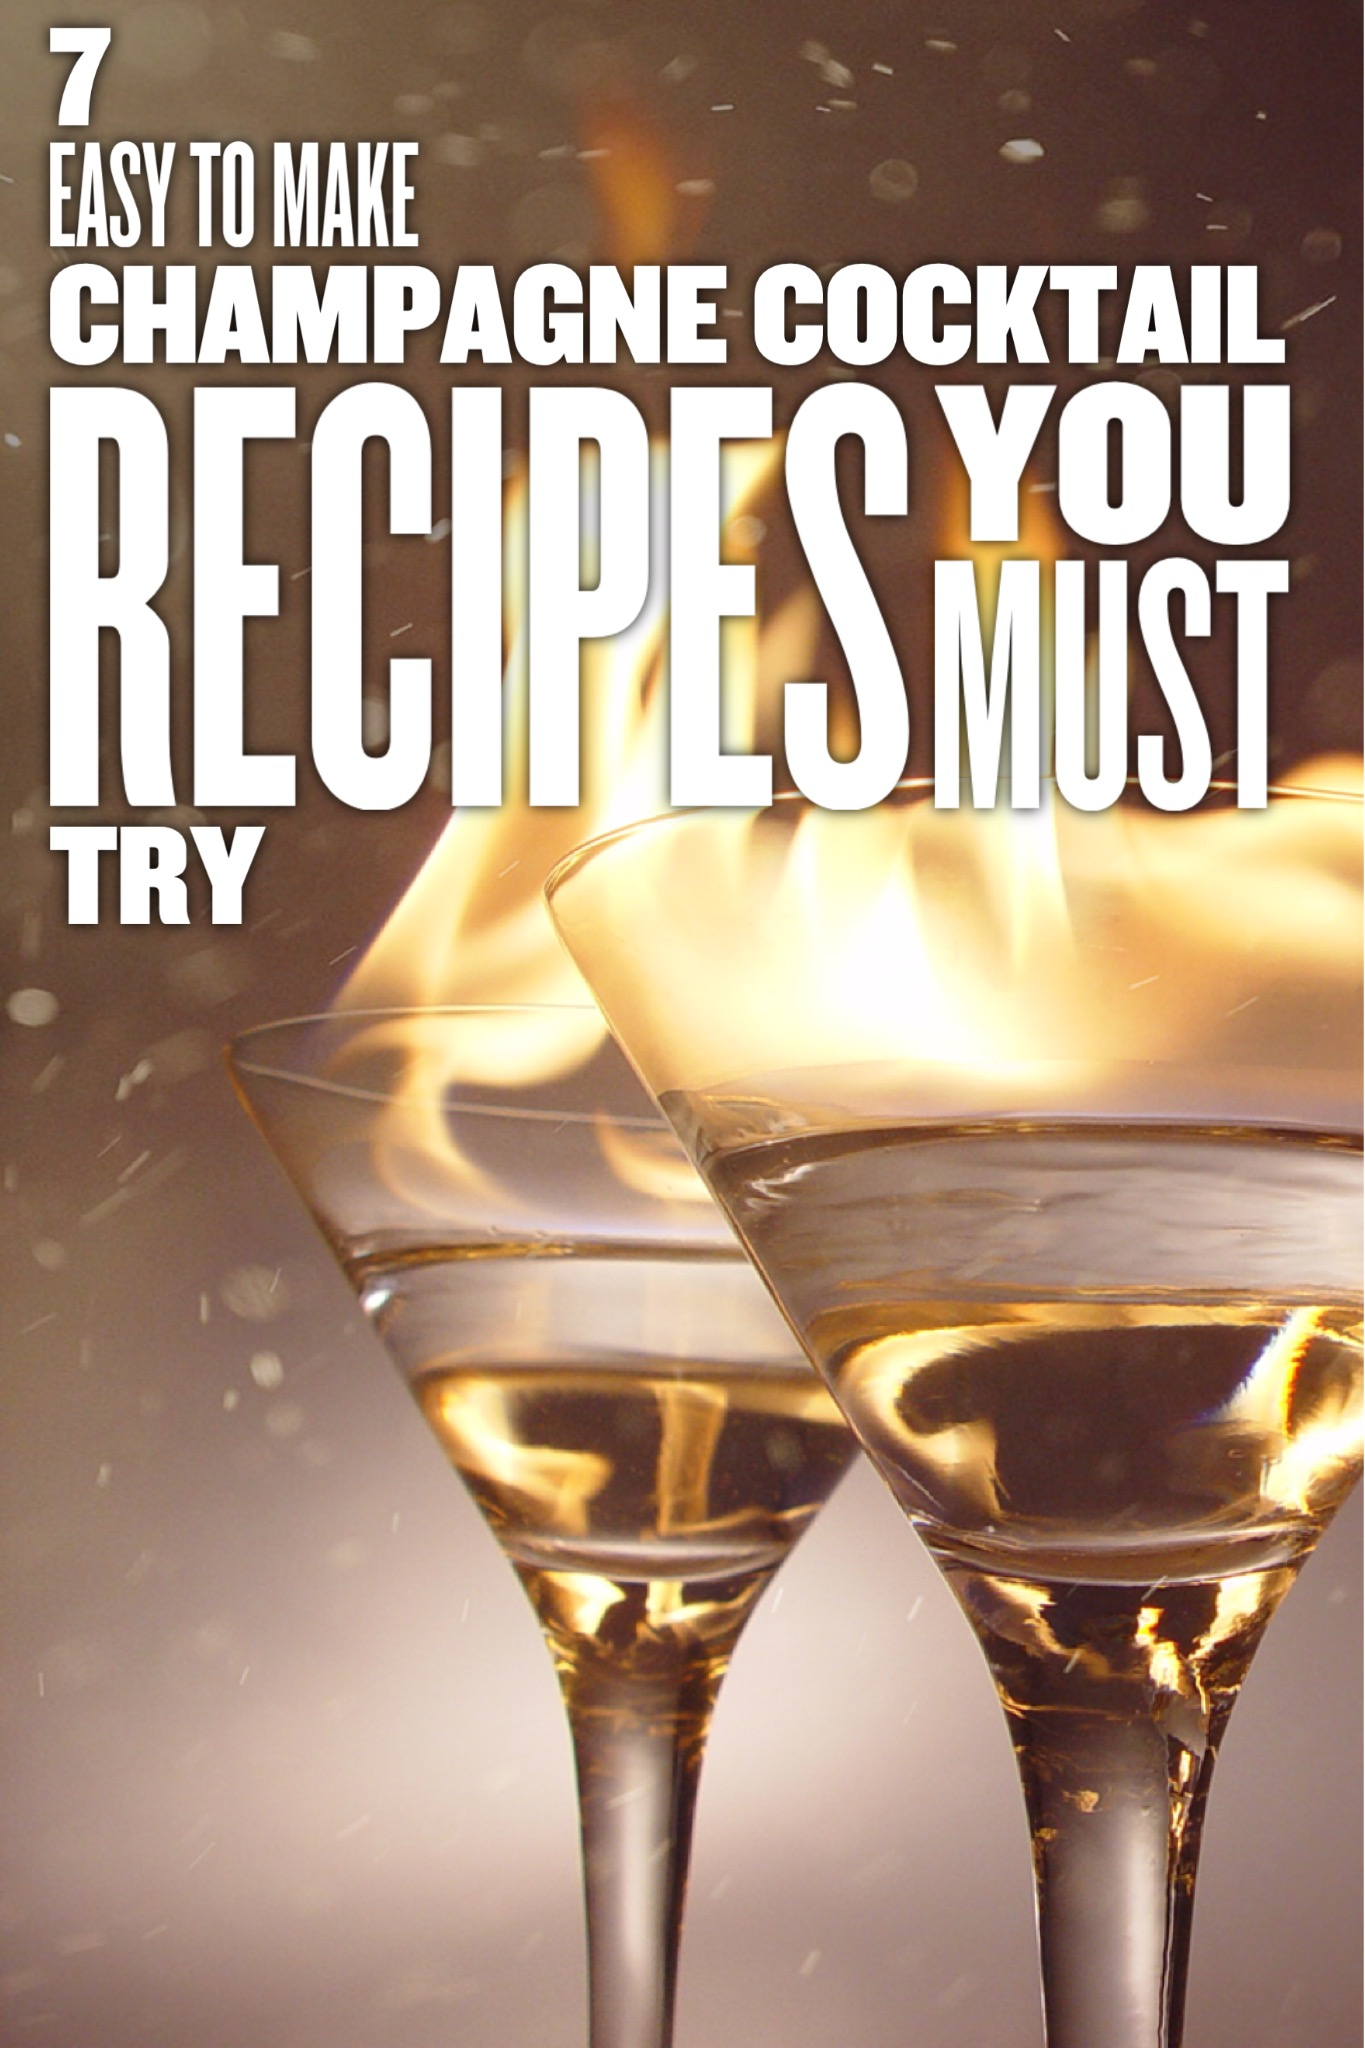 7 Easy Champagne Cocktail Recipes You Need For Your Next Party!